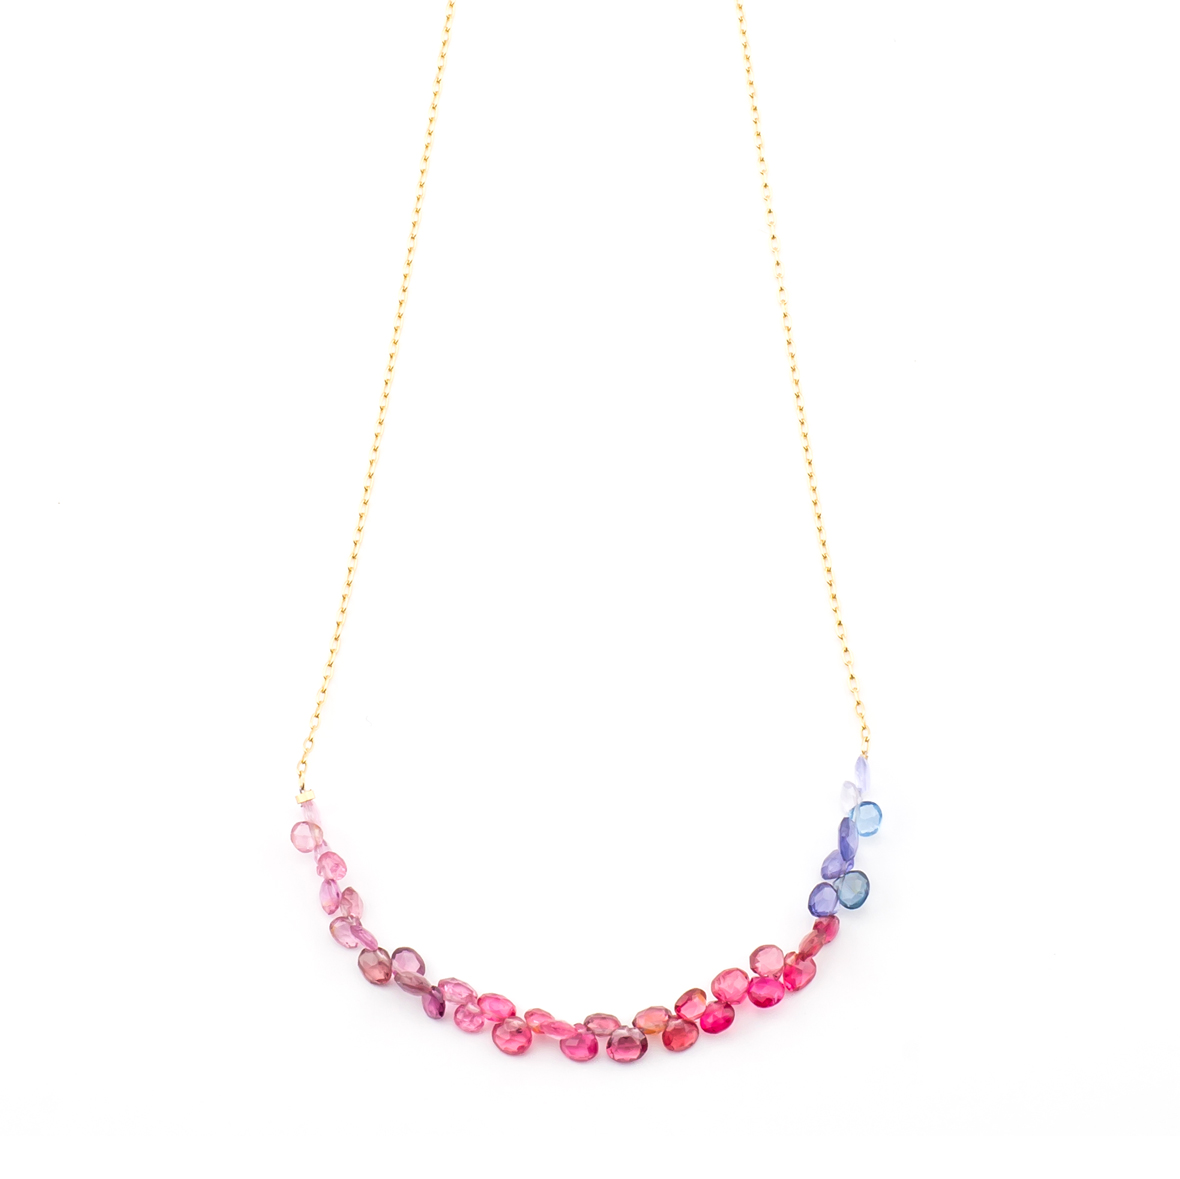 Necklace3.jpg